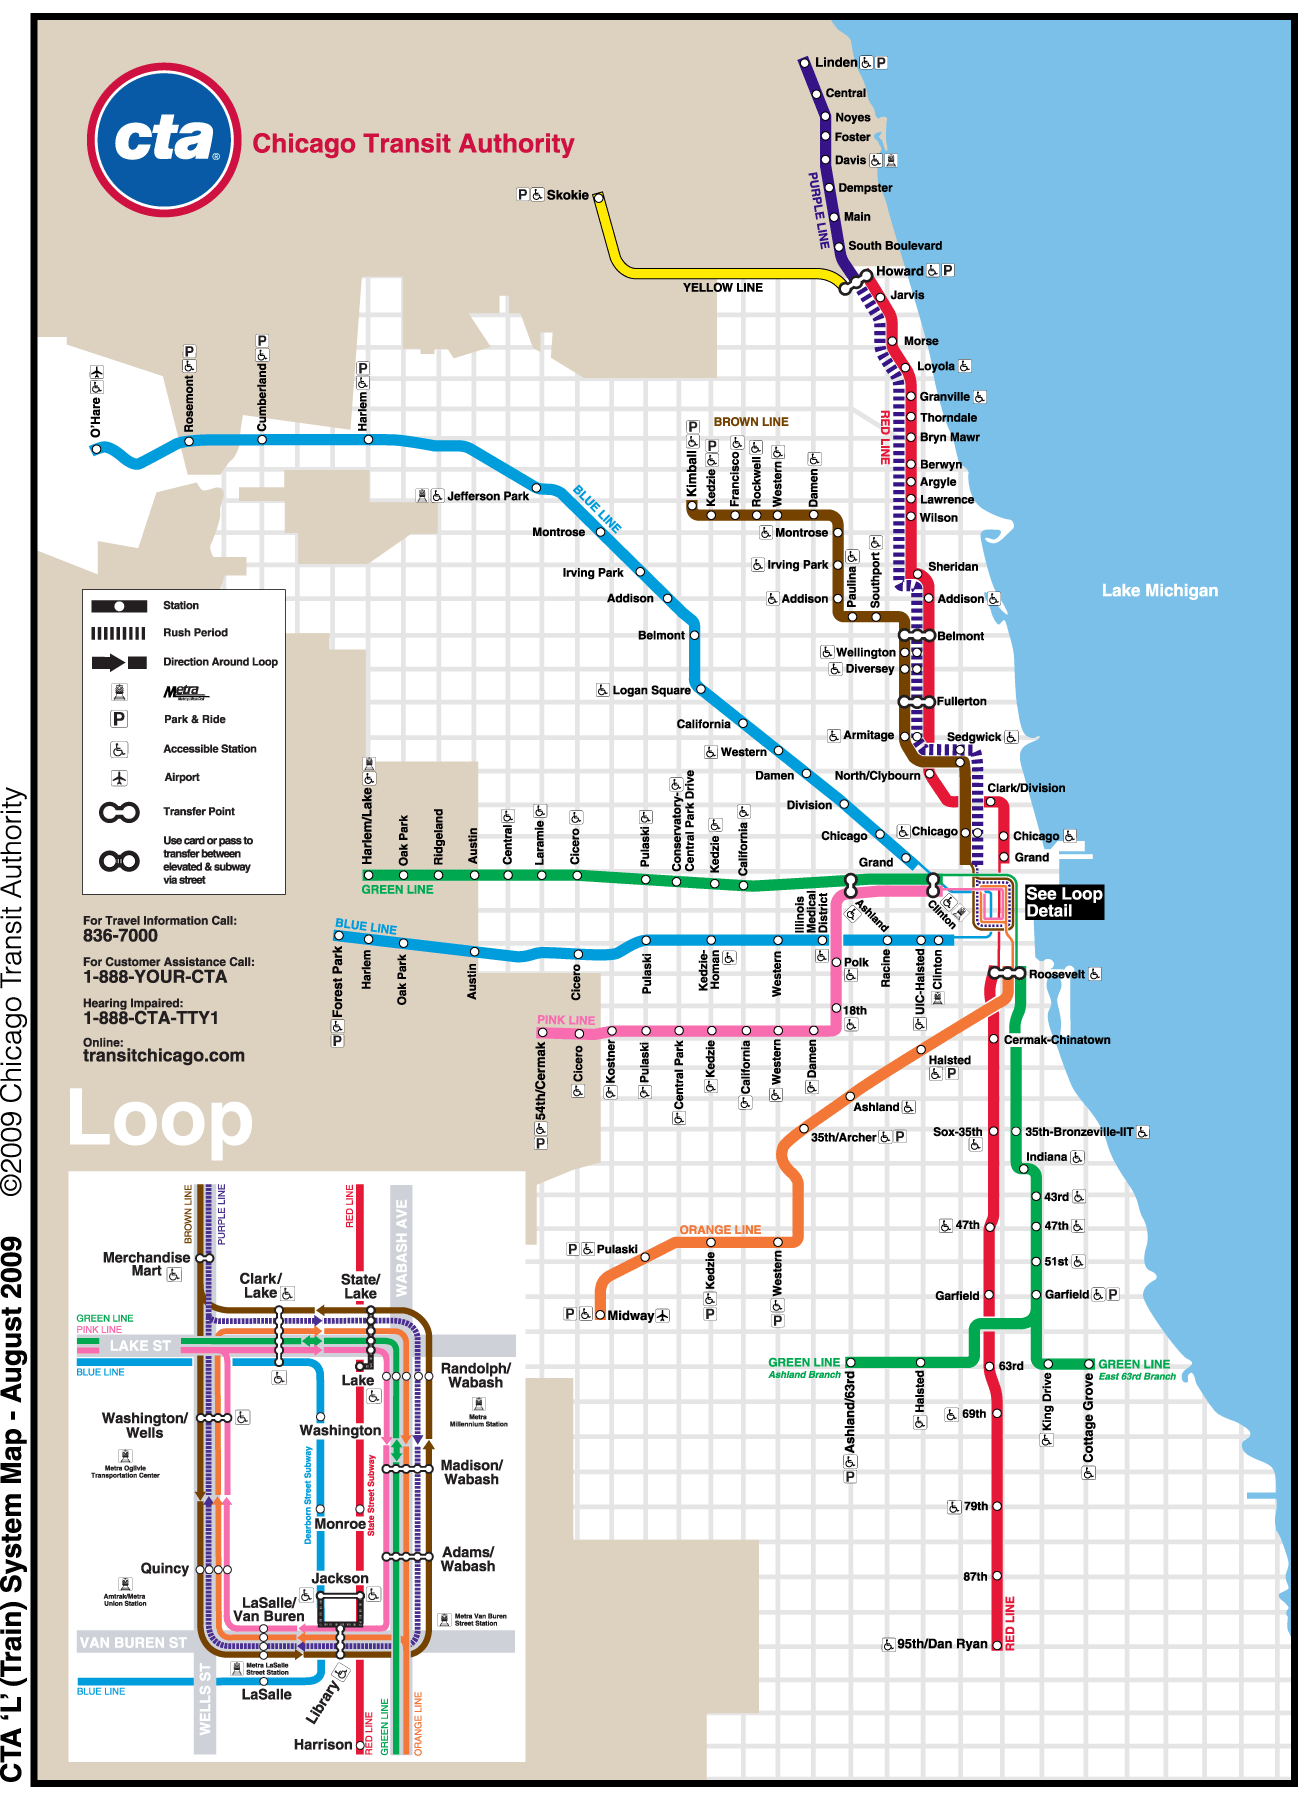 Chicago Subway Map Picture.5801 N River Rd Rosemont Il 60018 To Washington Station19 N